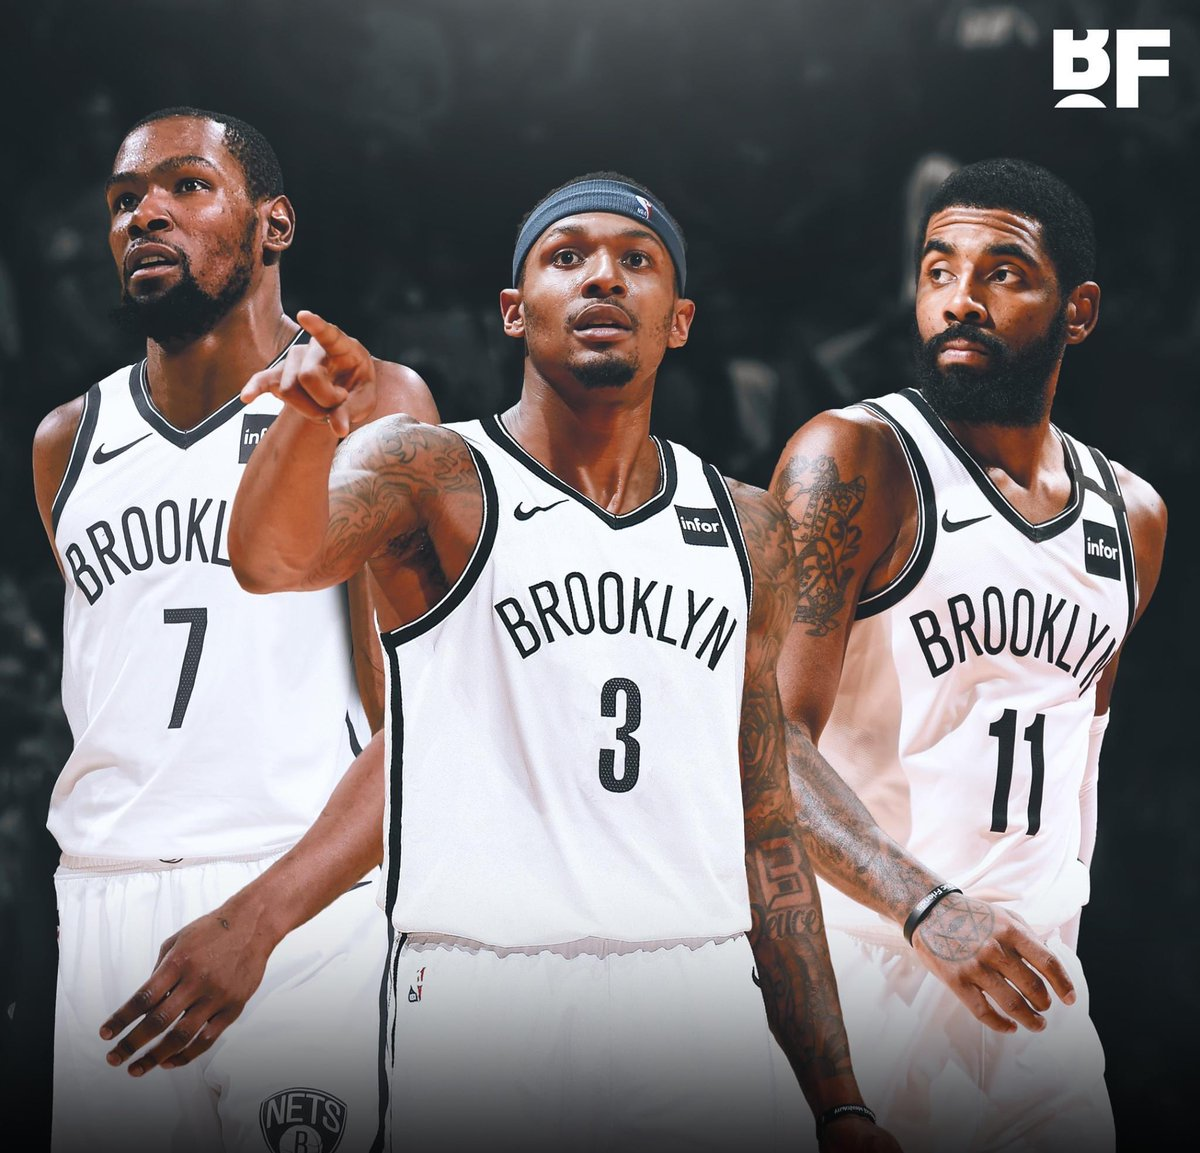 The Brooklyn Nets had internal discussions on trade options for Bradley Beal.   (per @sbondynydn) https://t.co/3kOr9mGXVf